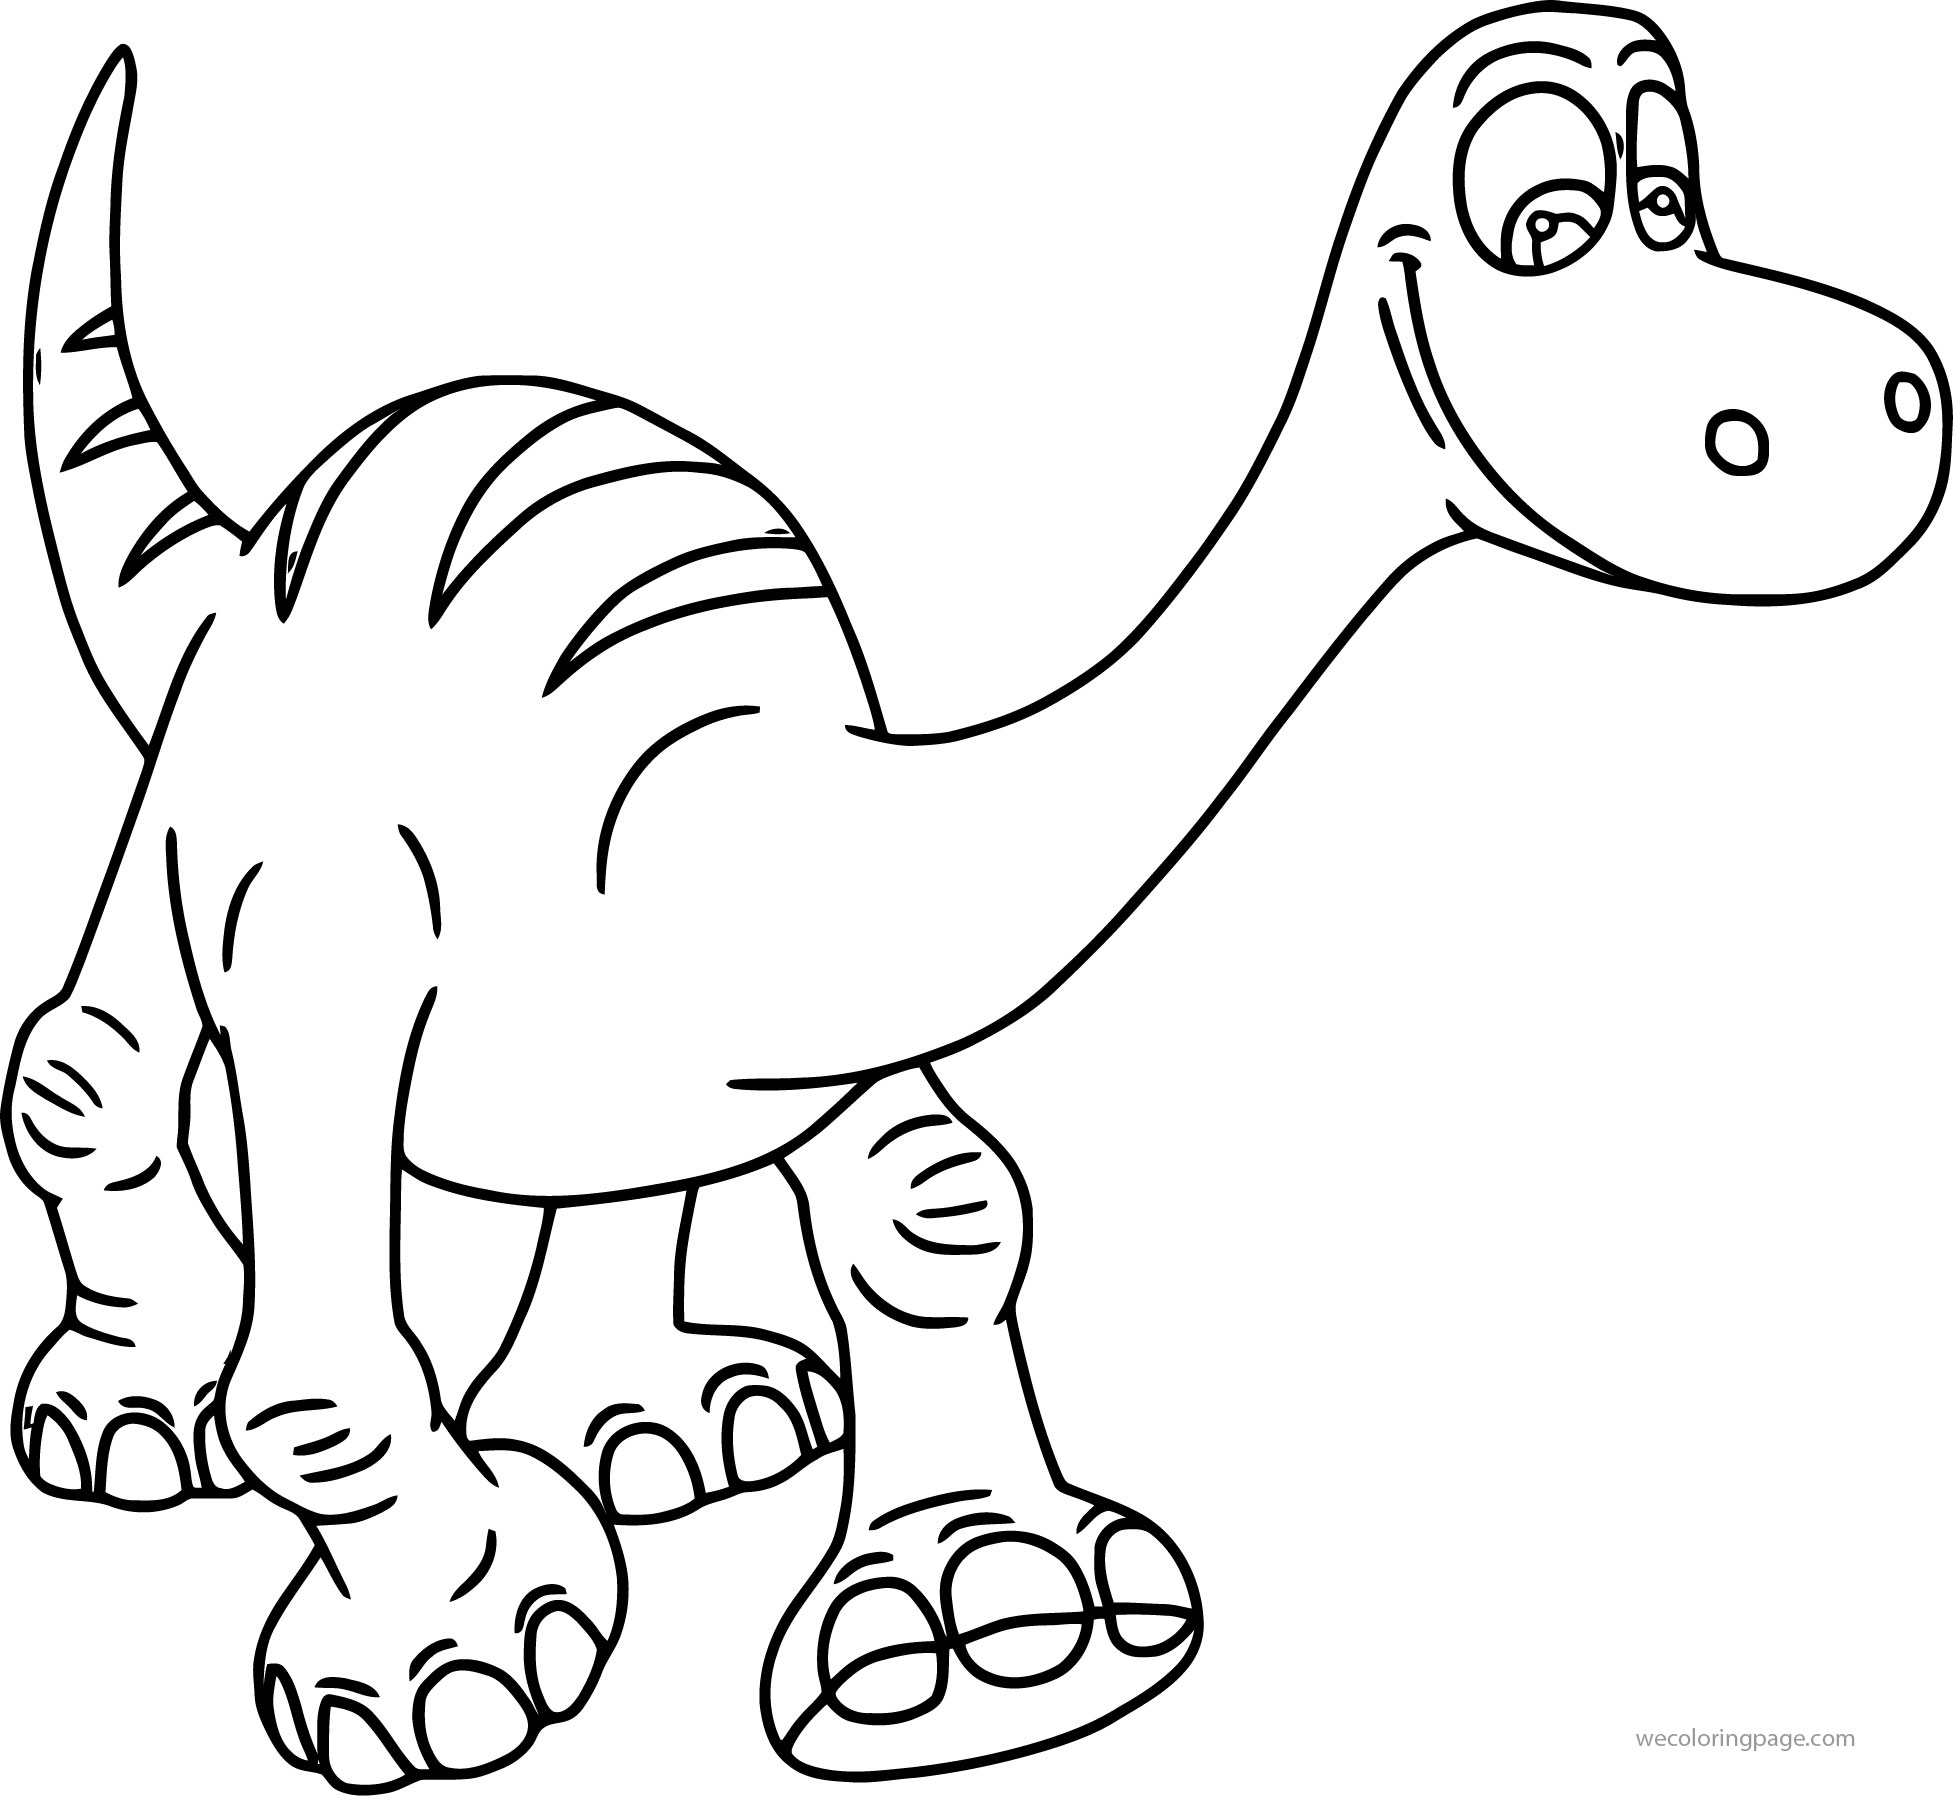 The Good Dinosaur Disney Coloring Pages Wecoloringpage Disney Coloring Pages